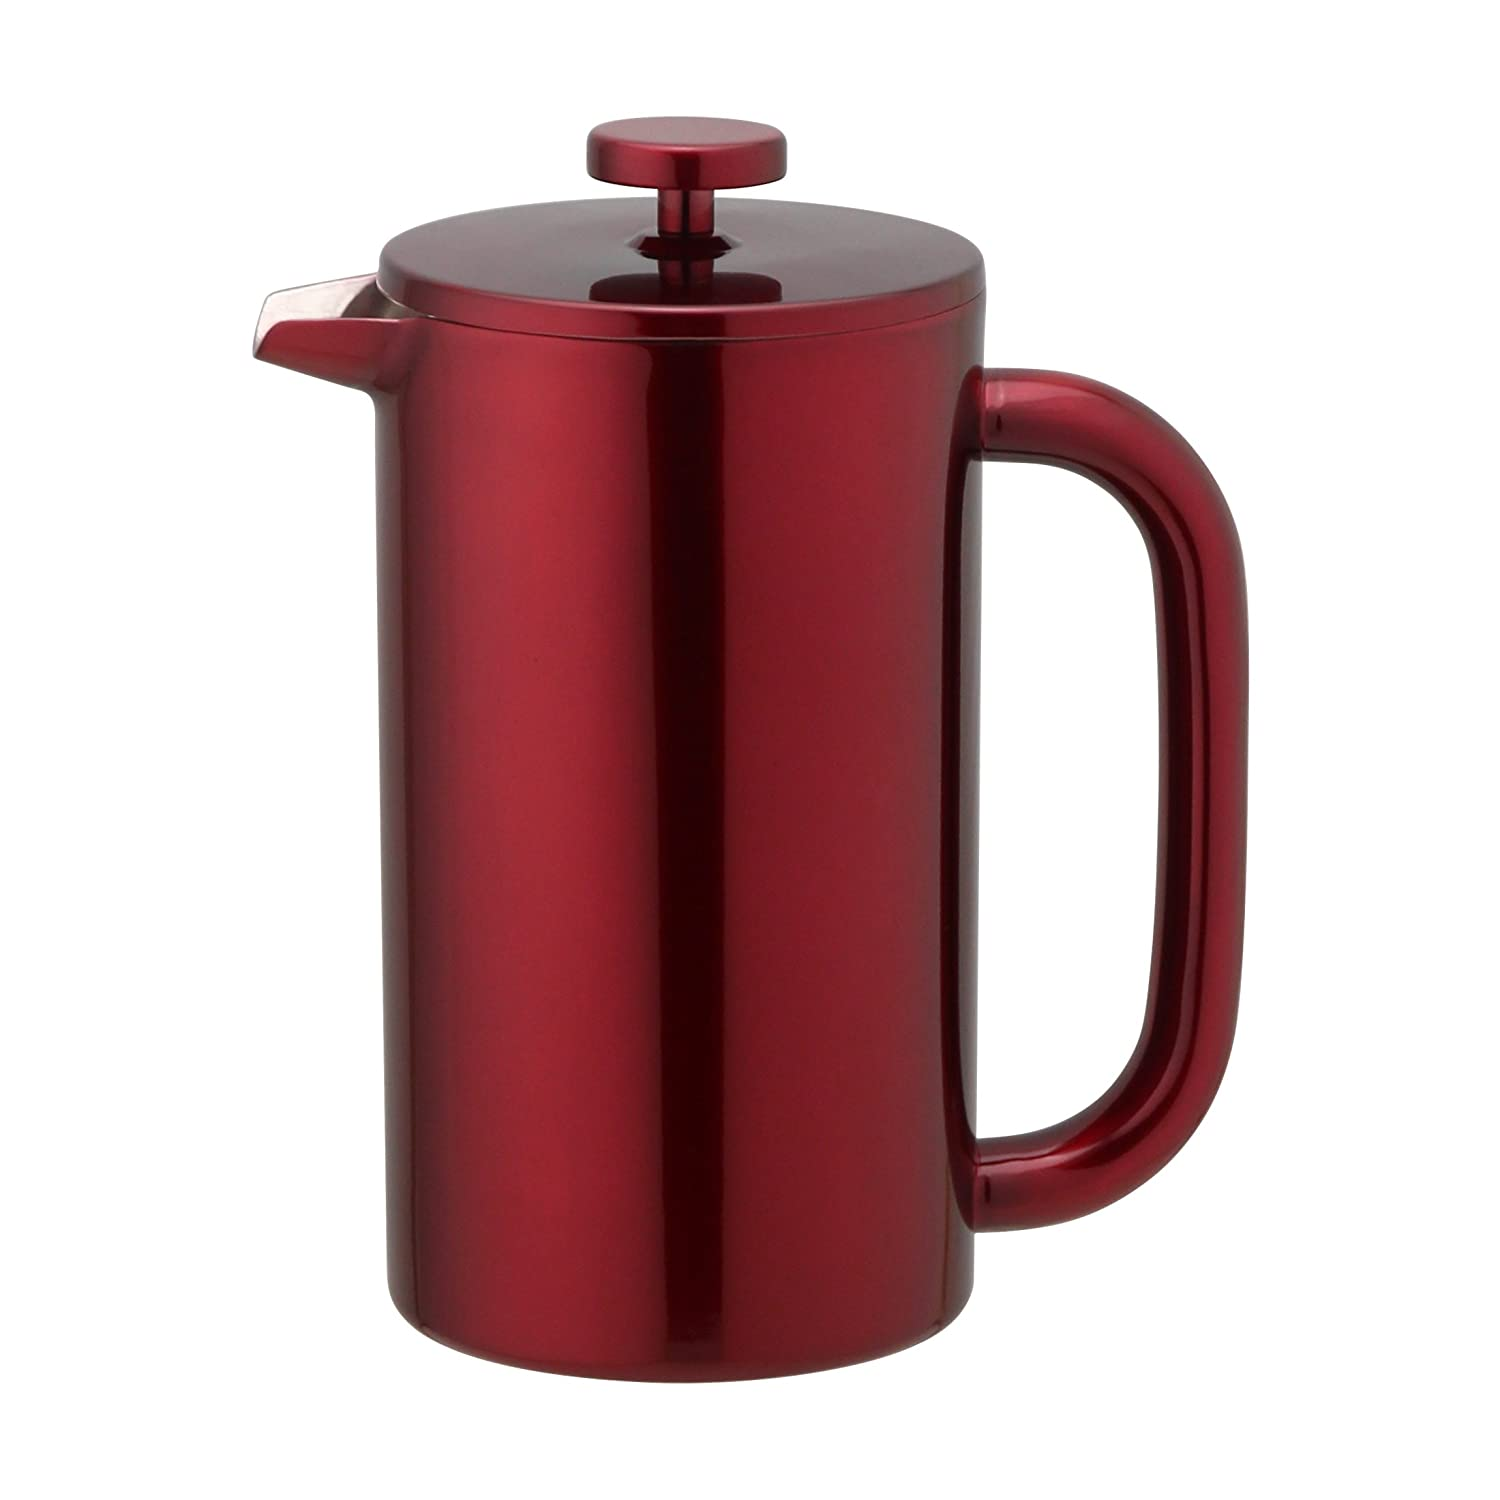 210911f5dbb7 Amazon.com  Highwin French Press - Double Wall Insulated Stainless Steel Coffee  Press Maker Plunger (Red)  Kitchen   Dining